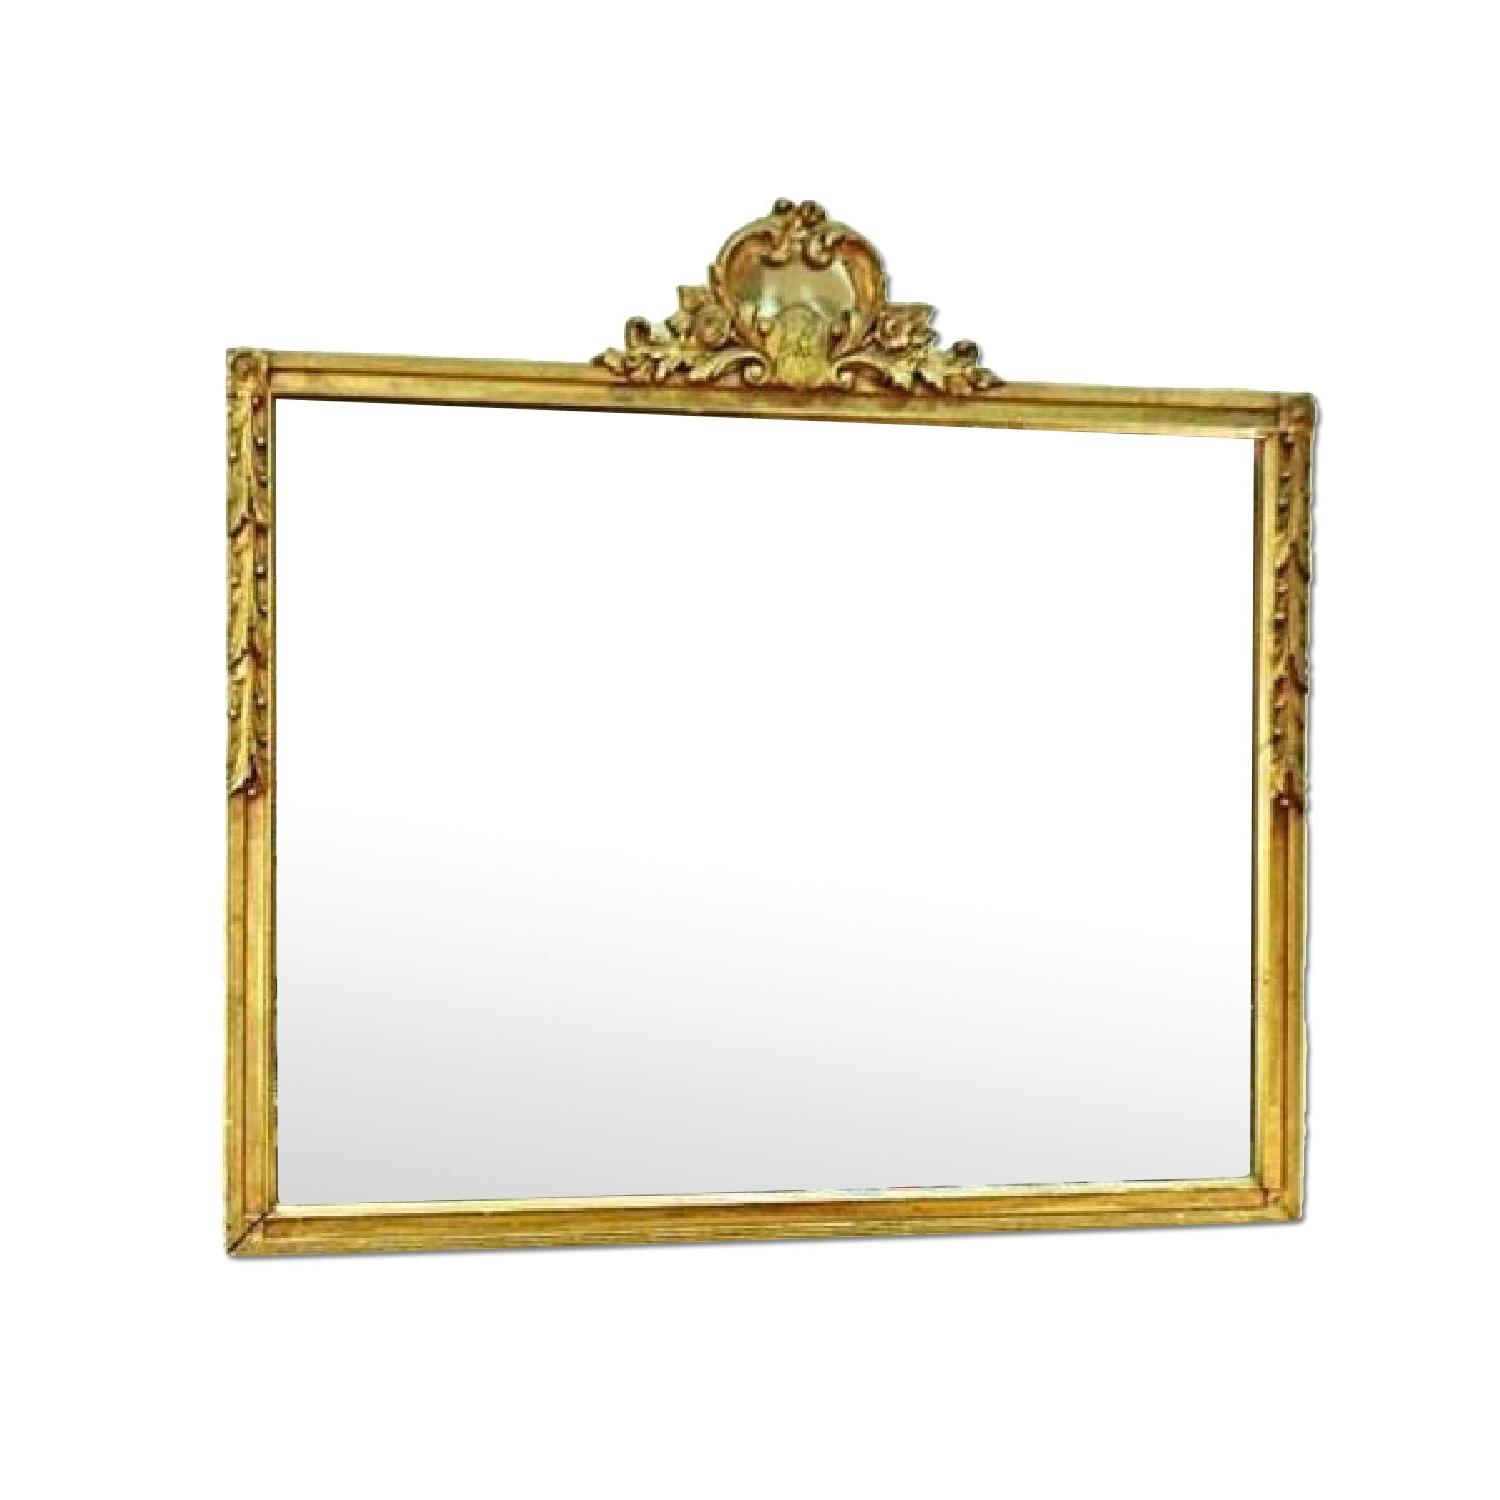 Antique Regency Style Carved Gilt Wood Wall Mirror